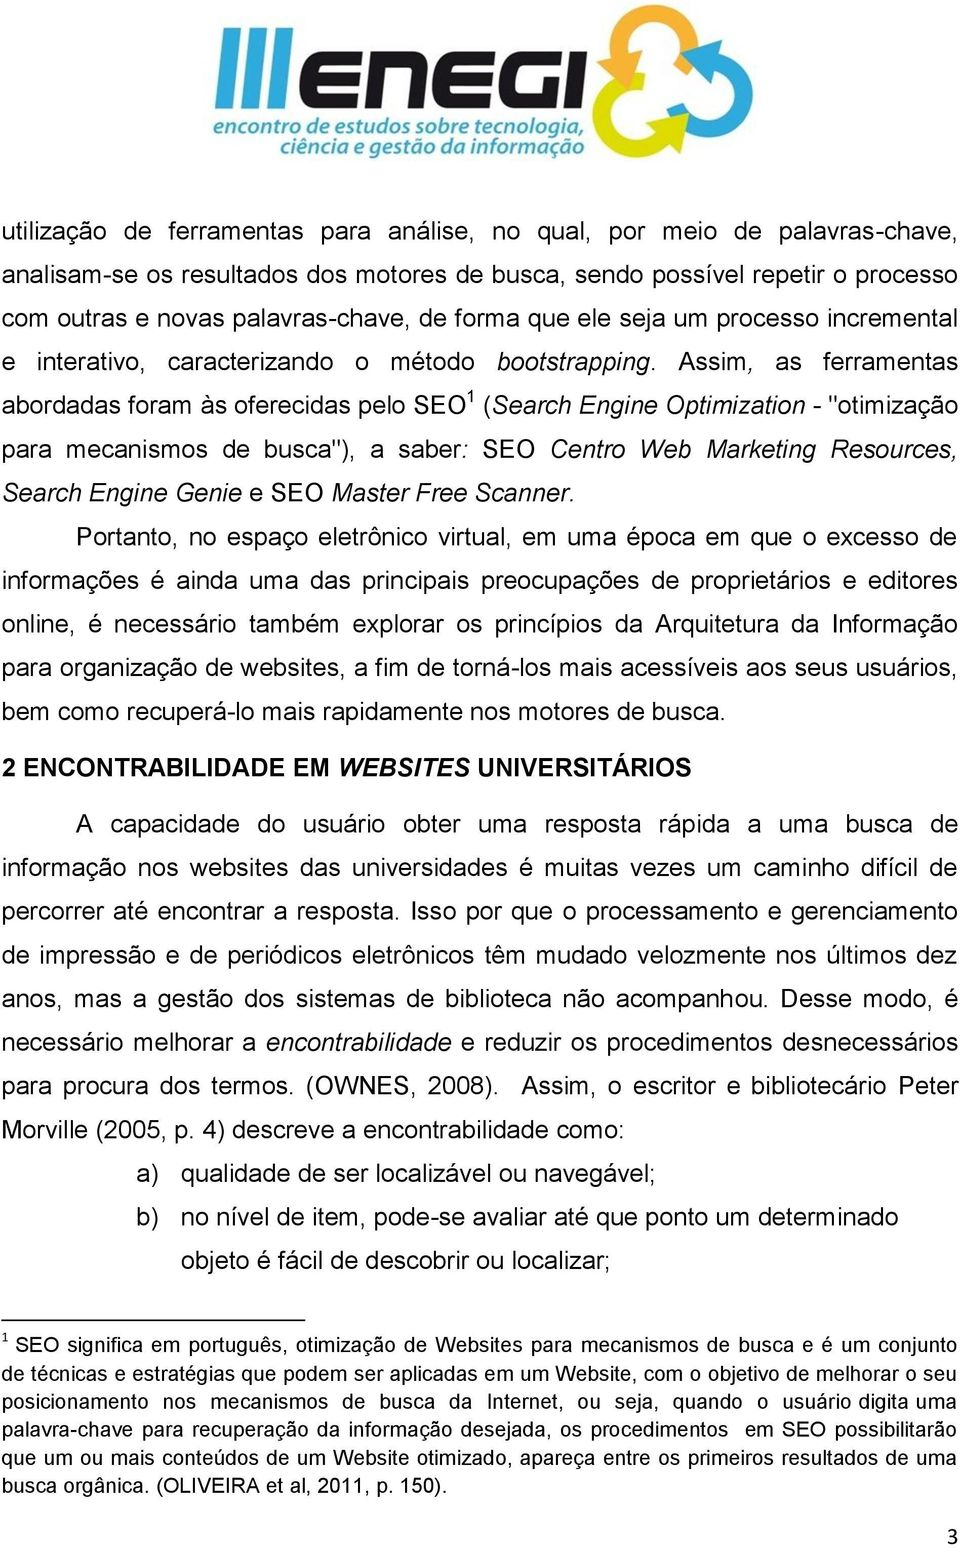 "Assim, as ferramentas abordadas foram às oferecidas pelo SEO 1 (Search Engine Optimization - ""otimização para mecanismos de busca""), a saber: SEO Centro Web Marketing Resources, Search Engine Genie e"